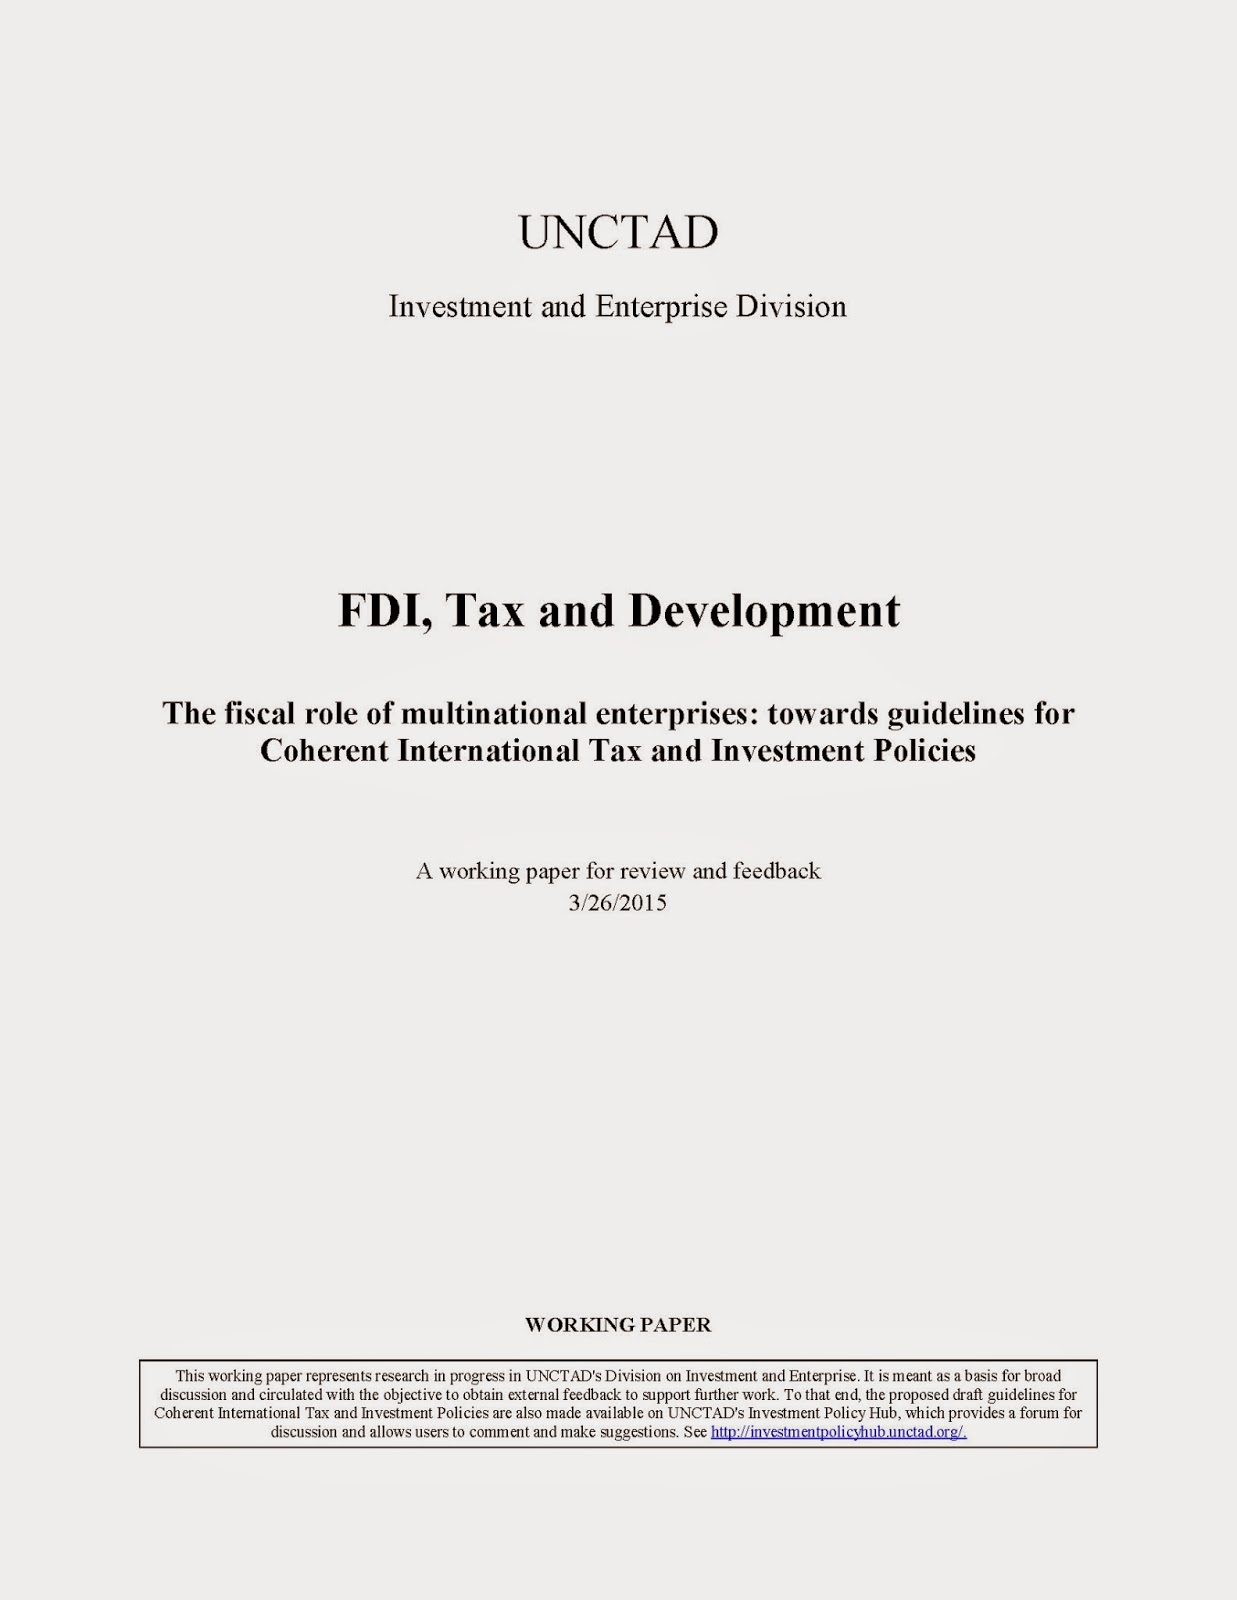 http://investmentpolicyhub.unctad.org/Blog/Index/42